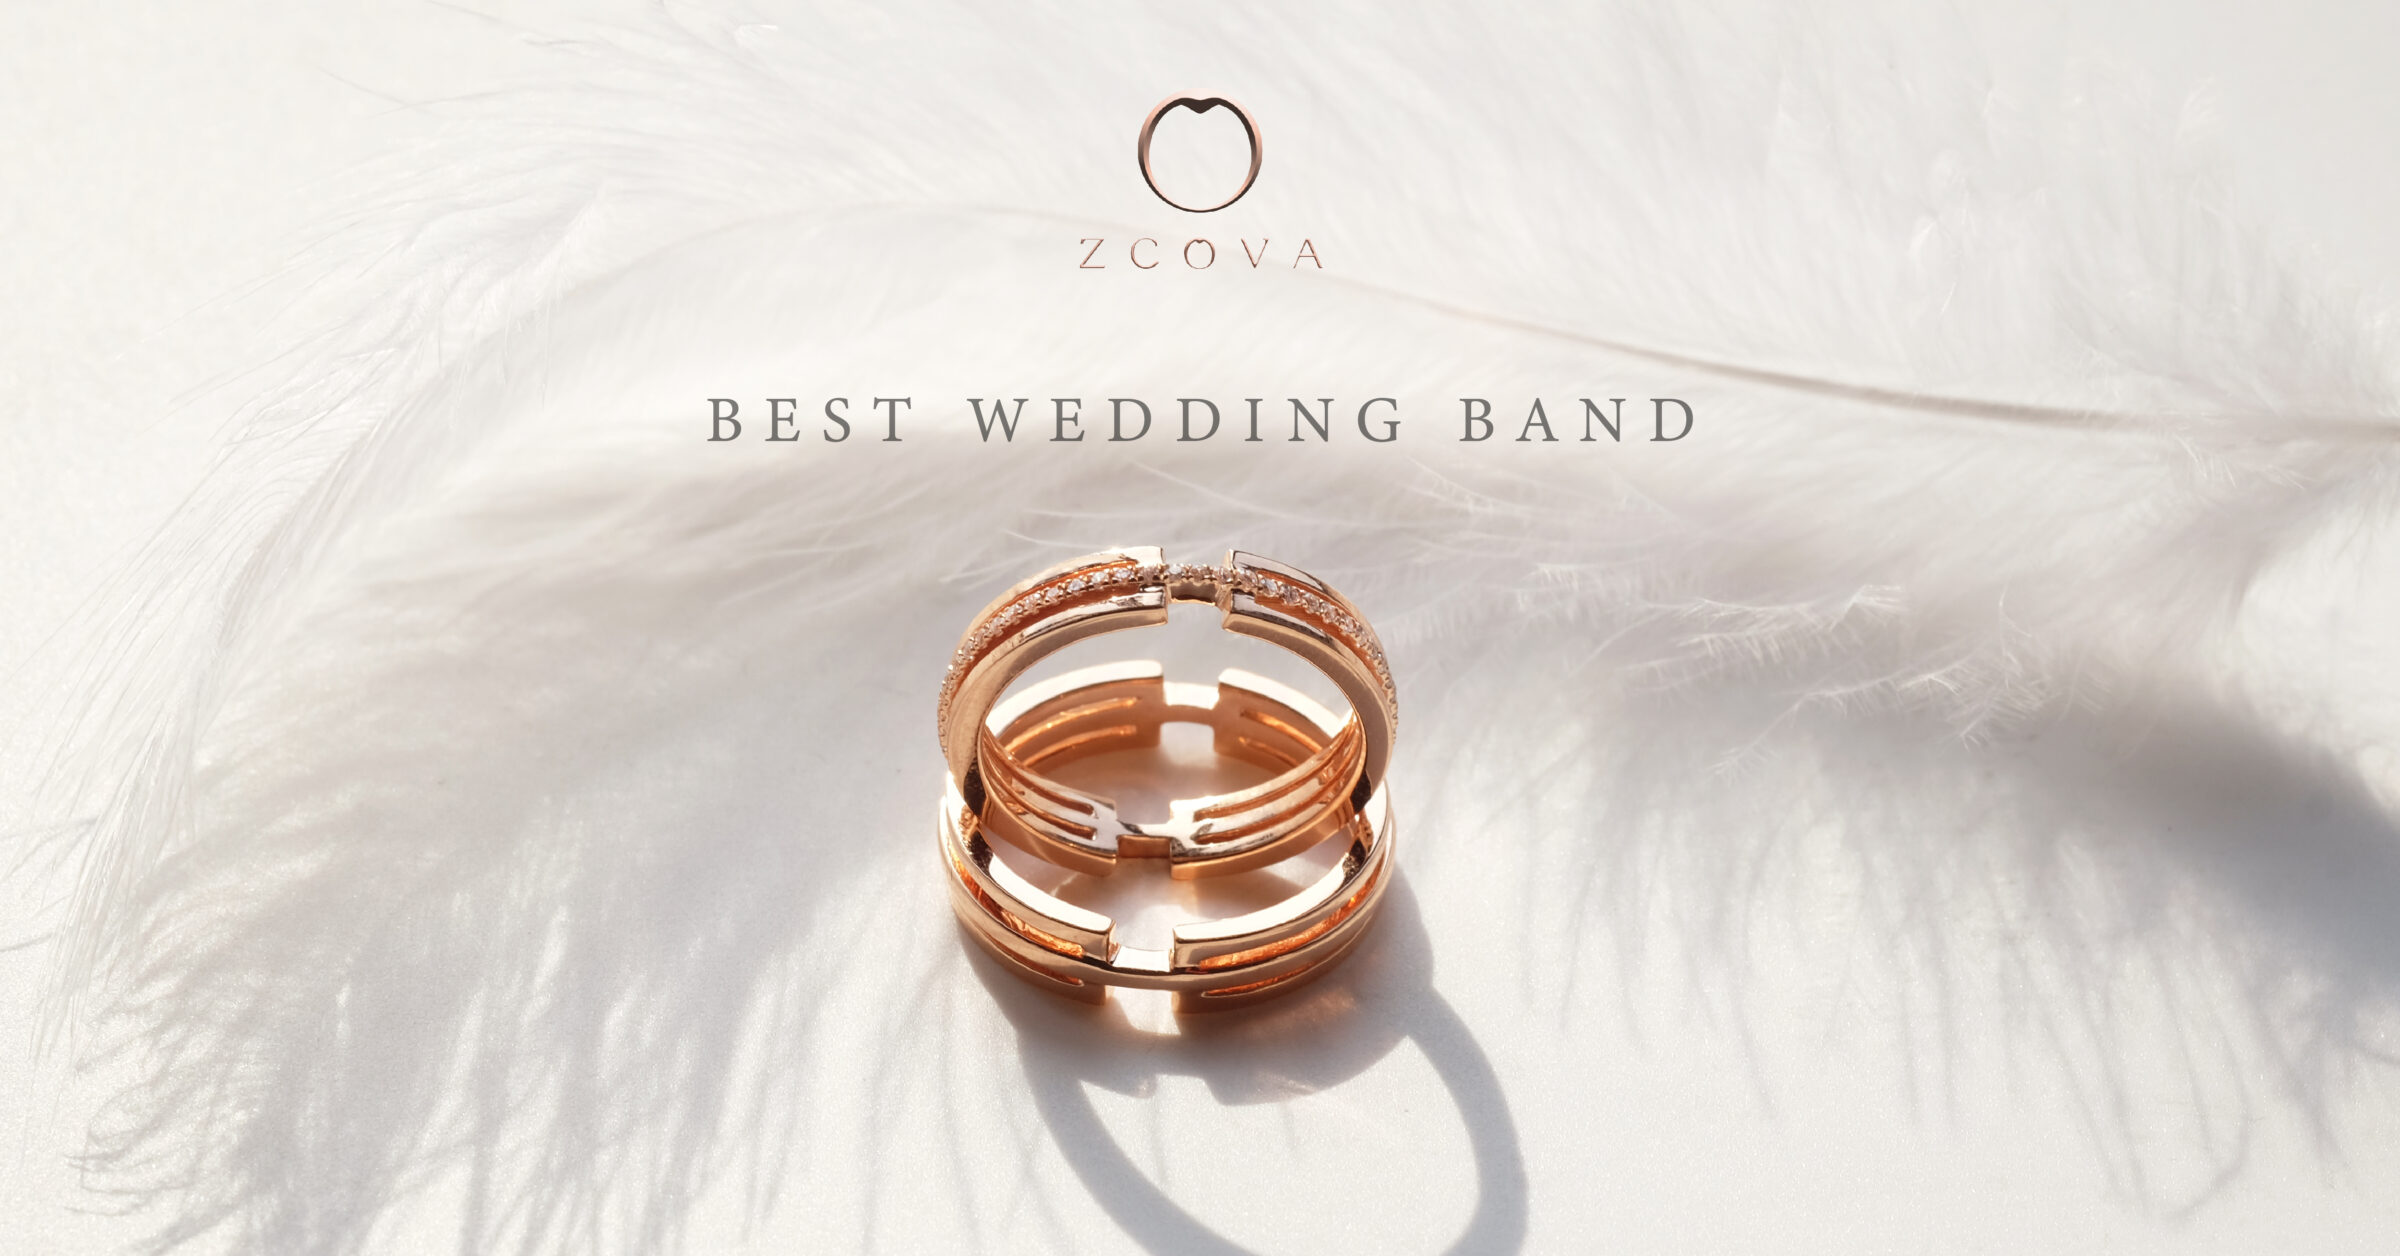 Best Wedding Band Design